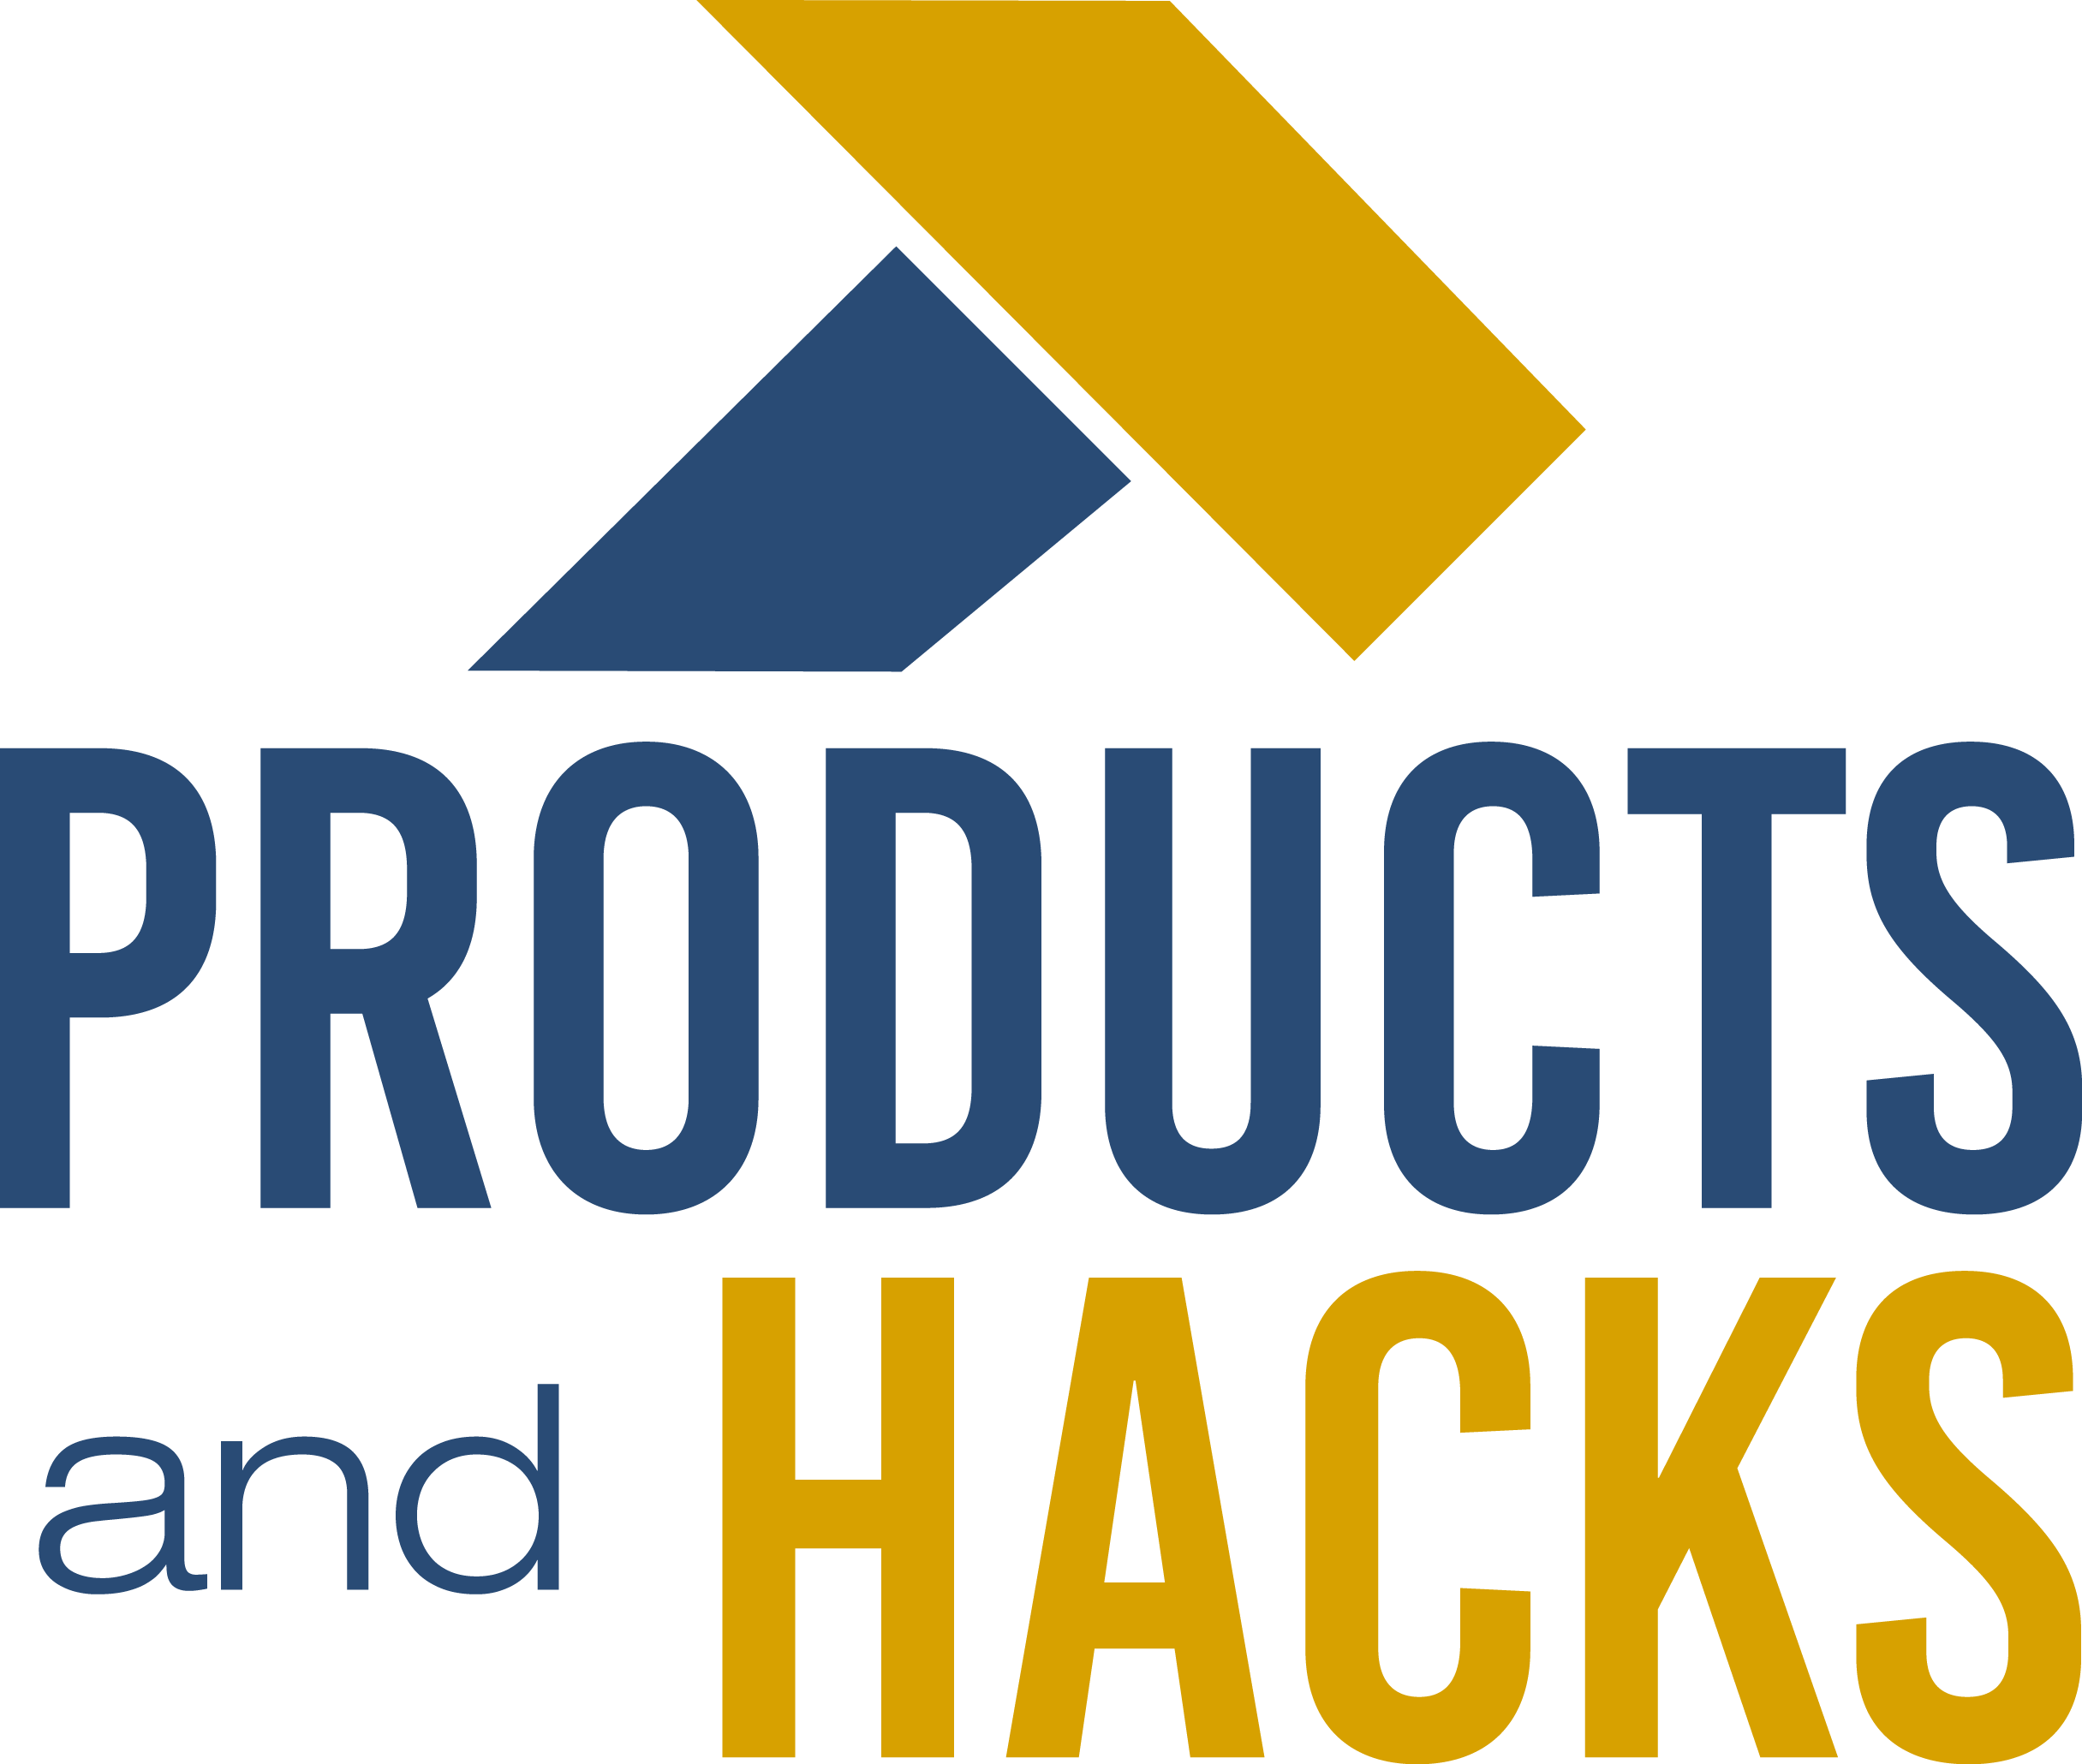 Products and Hacks